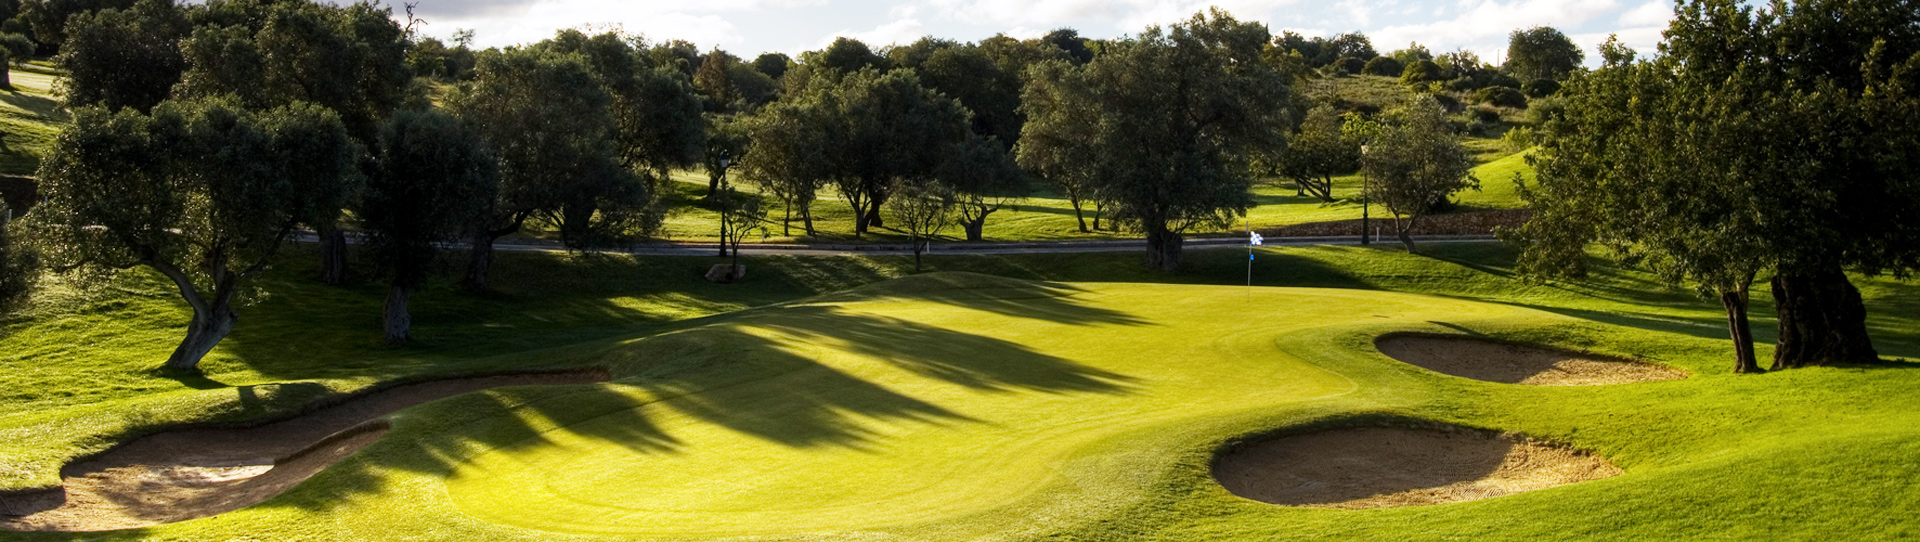 Vale da Pinta Golf Course - Photo 3